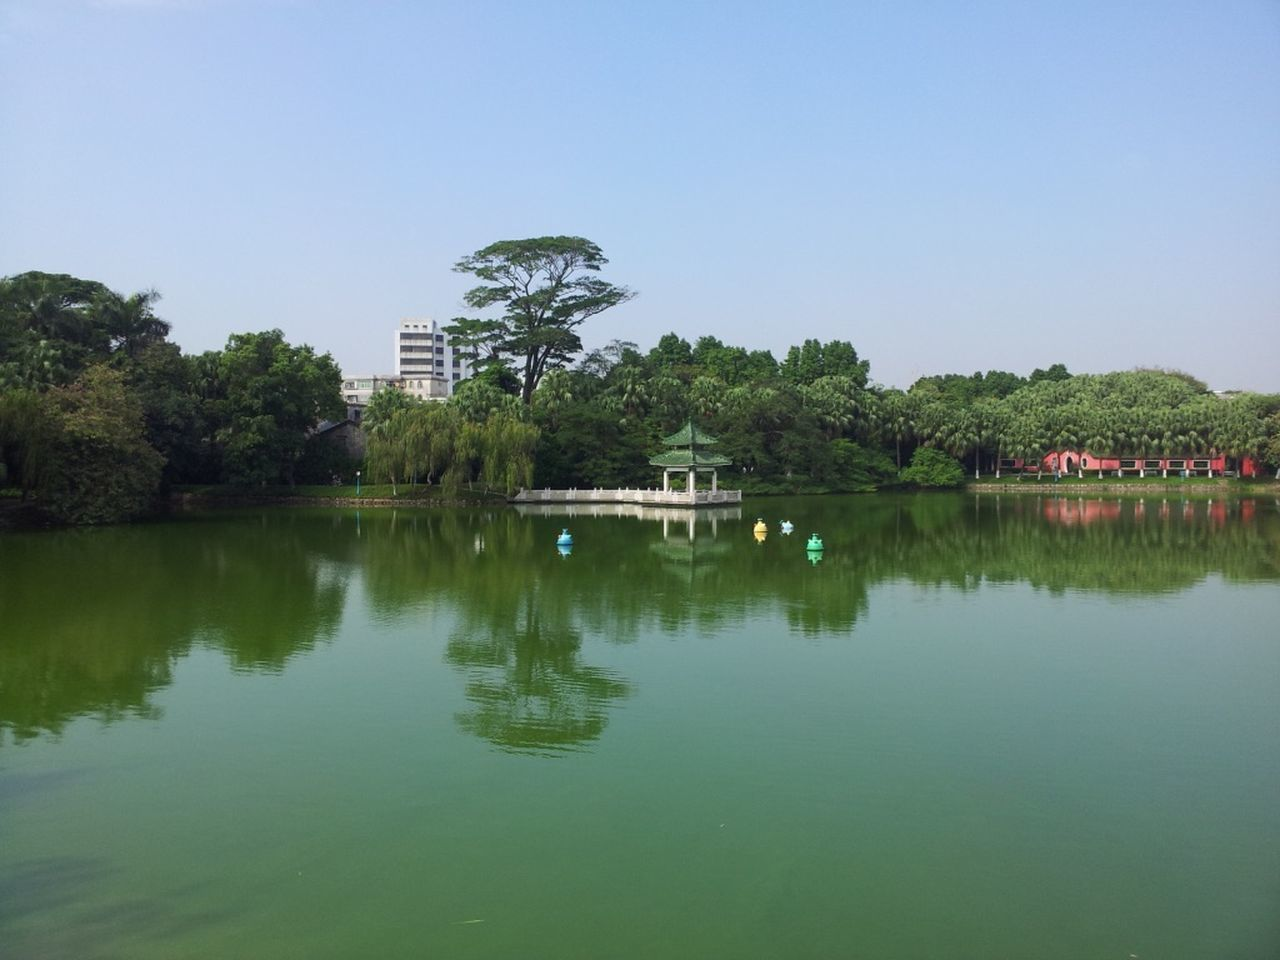 reflection, water, tree, waterfront, architecture, built structure, outdoors, building exterior, no people, tranquil scene, lake, day, nature, tranquility, beauty in nature, scenics, clear sky, sky